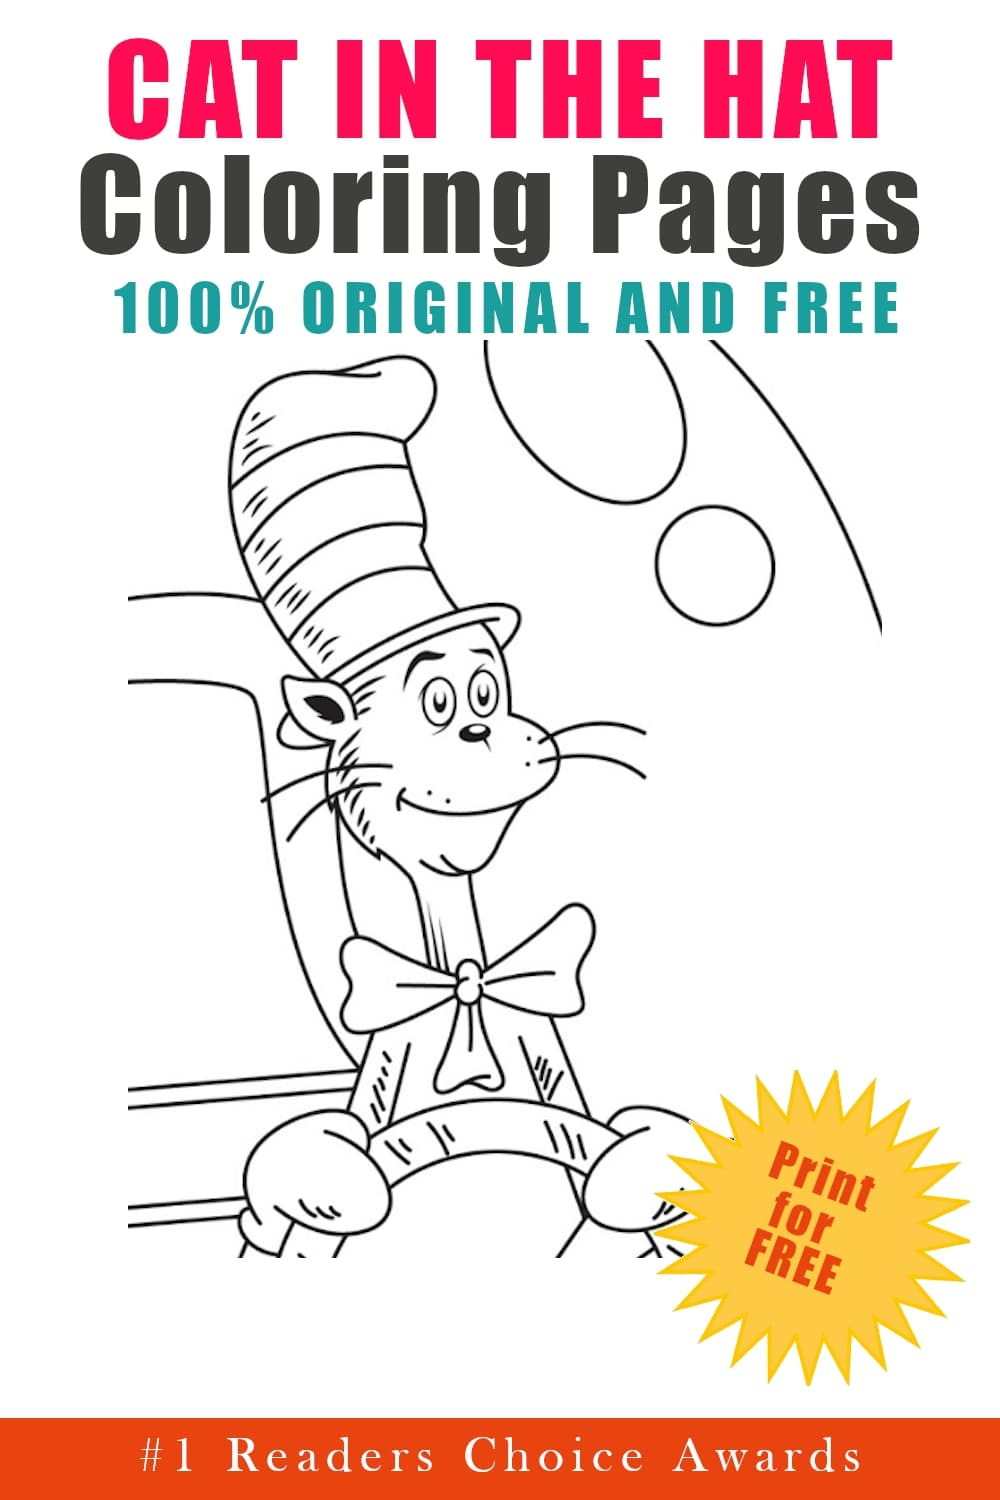 original and free cat in the hat coloring pages